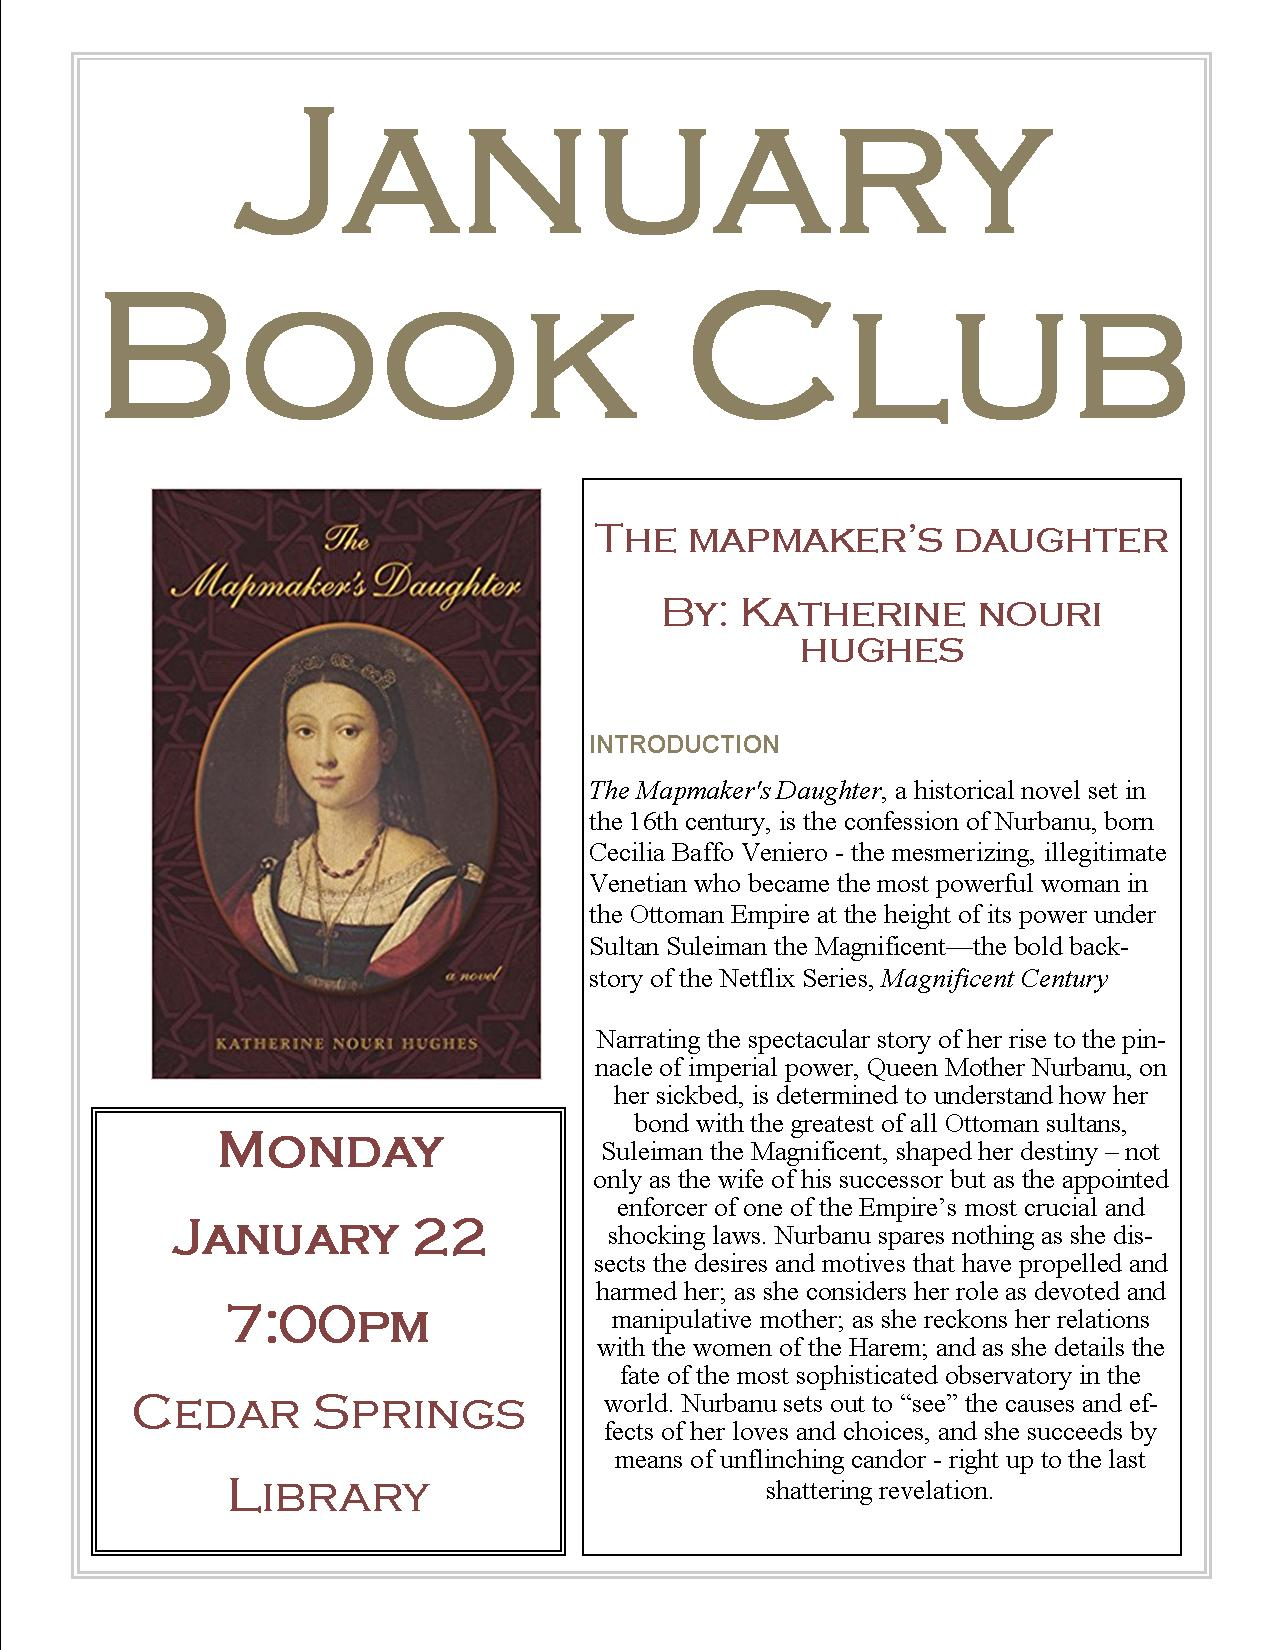 January Book Club - A Mapmaker's Daughter